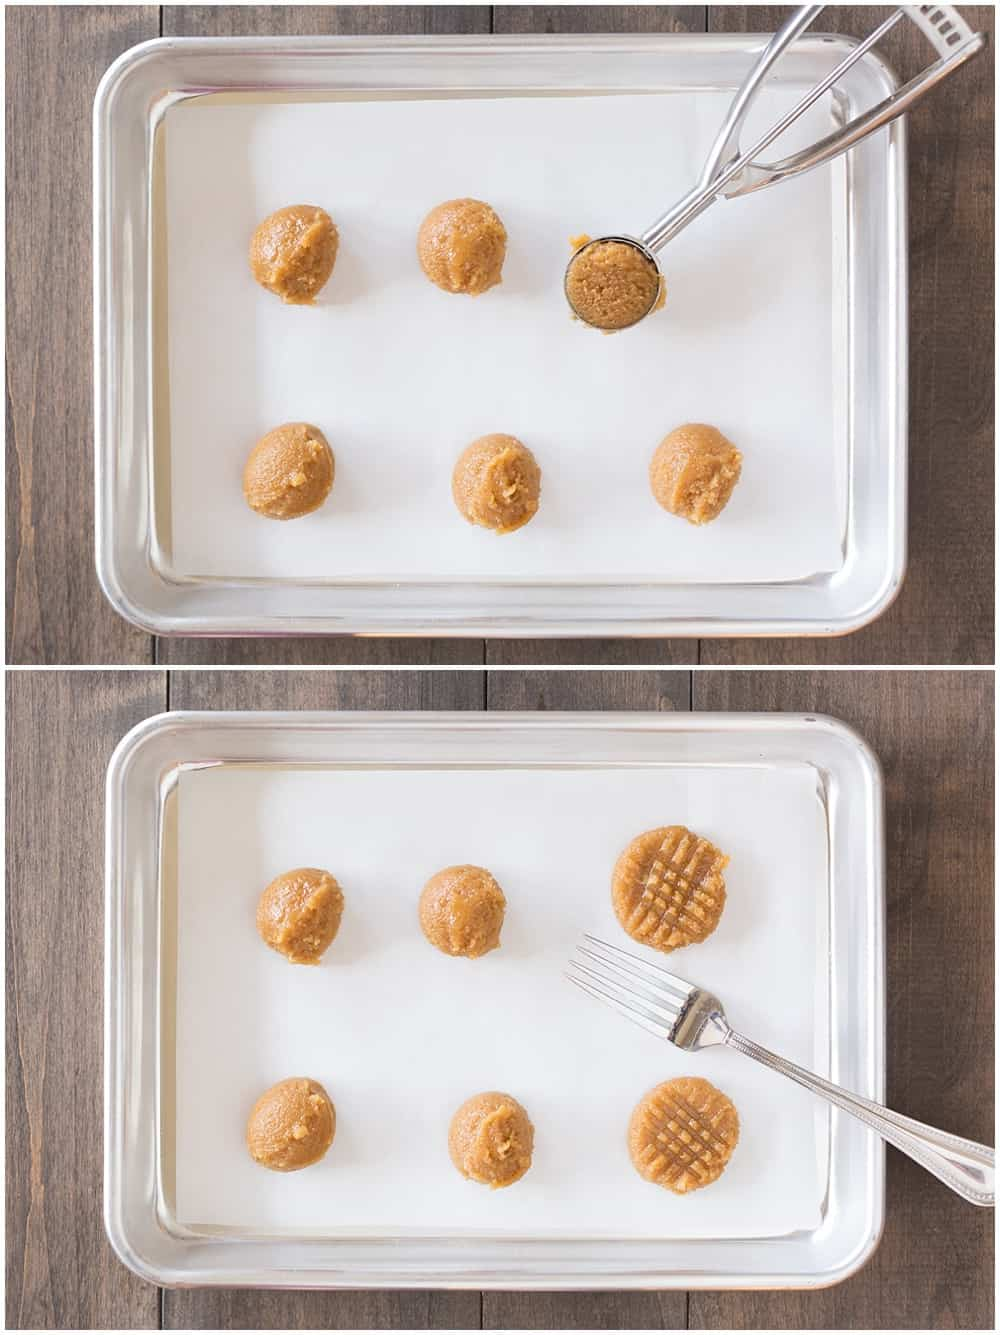 Super simple homemade 3 ingredient peanut butter cookies!